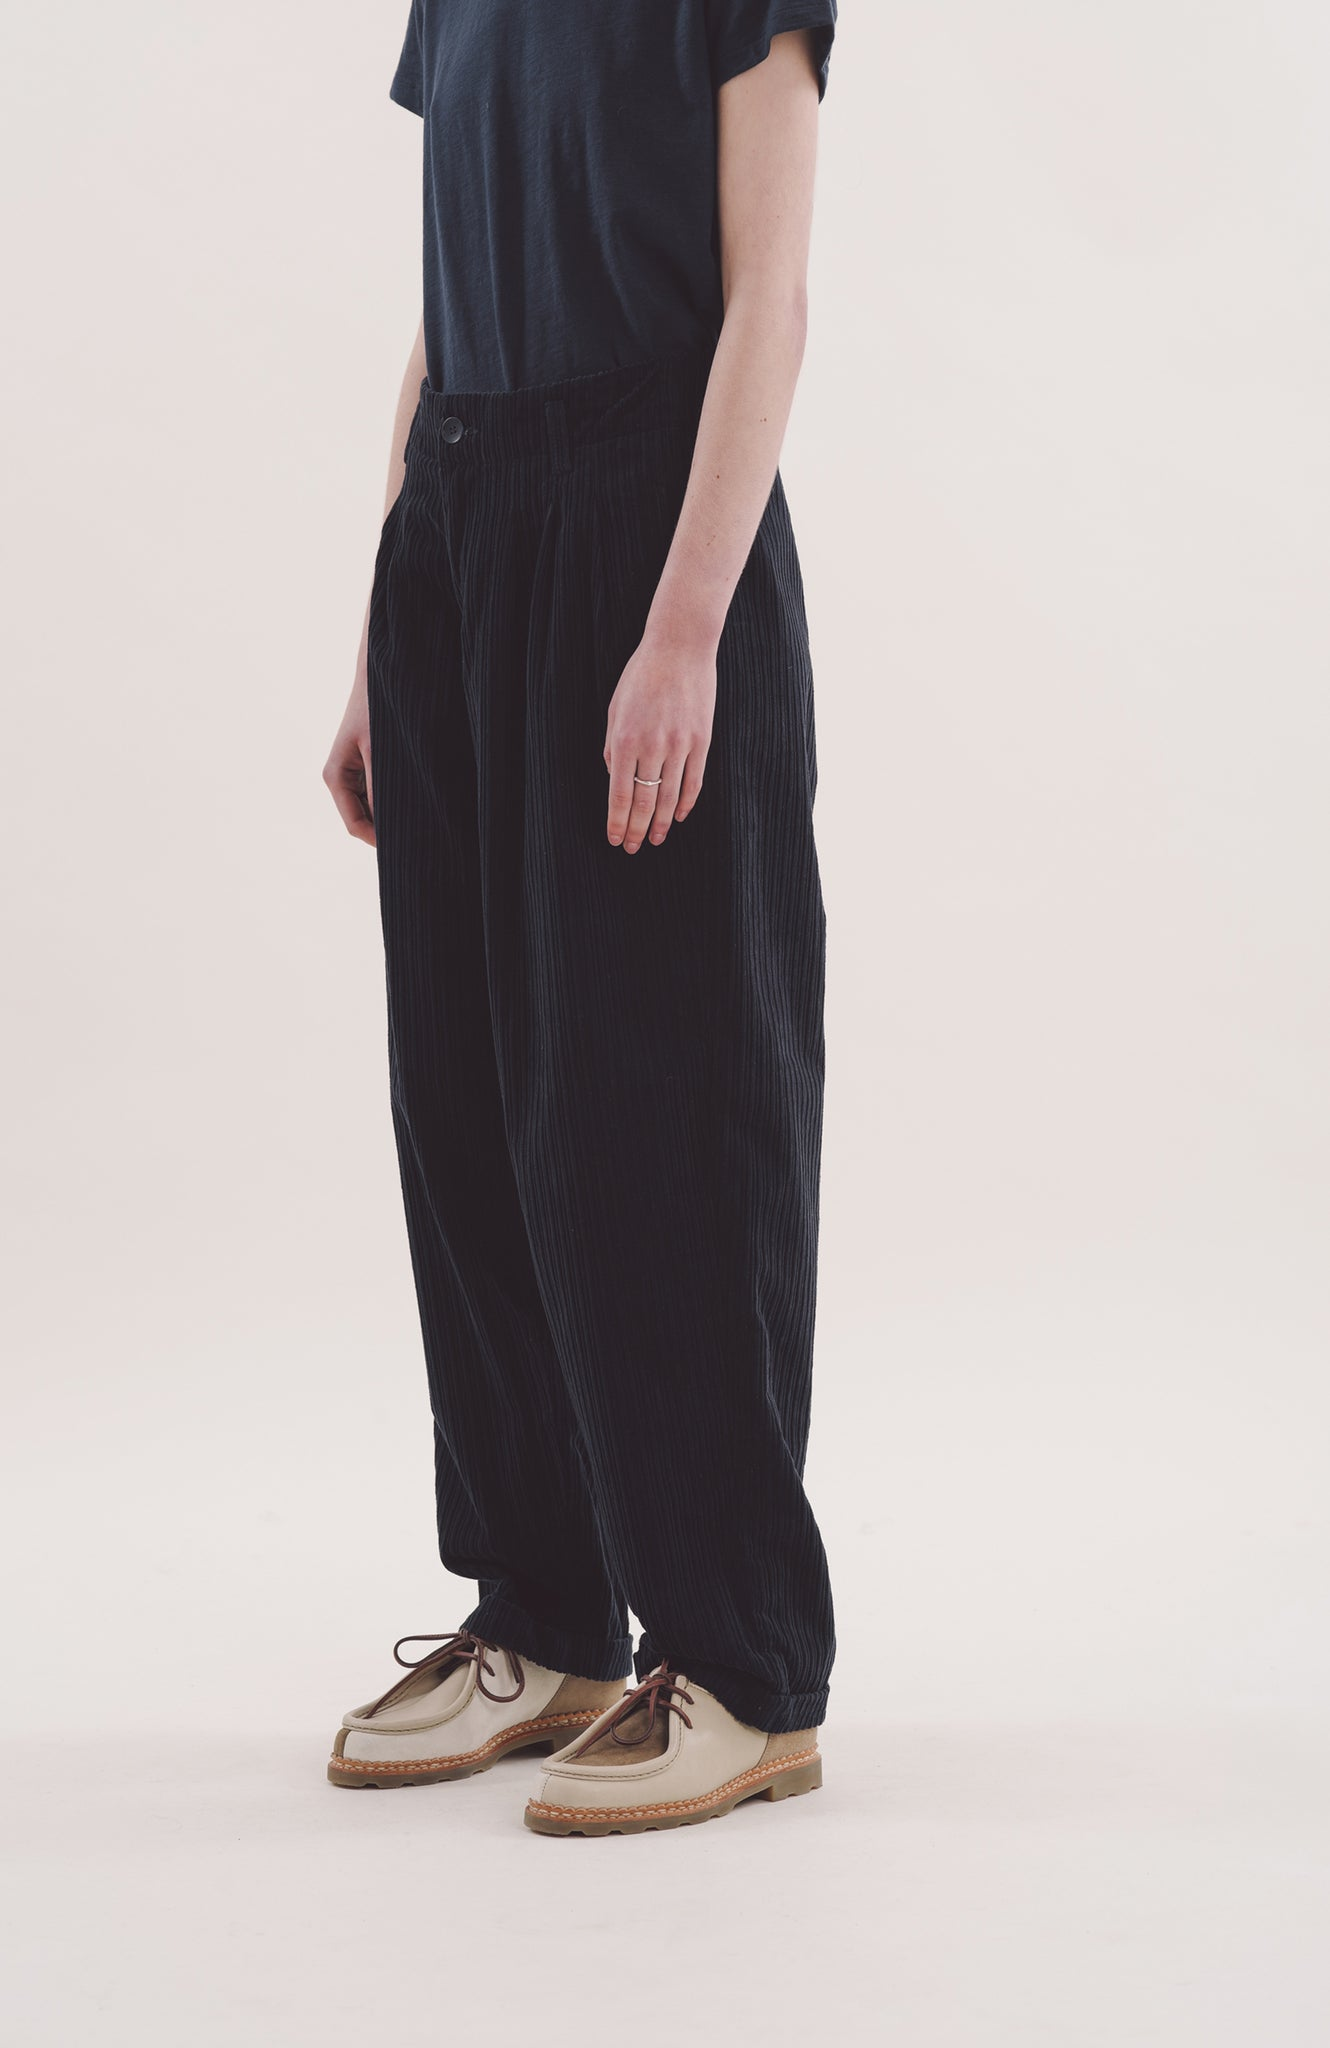 Keaton Trousers in Navy Cord